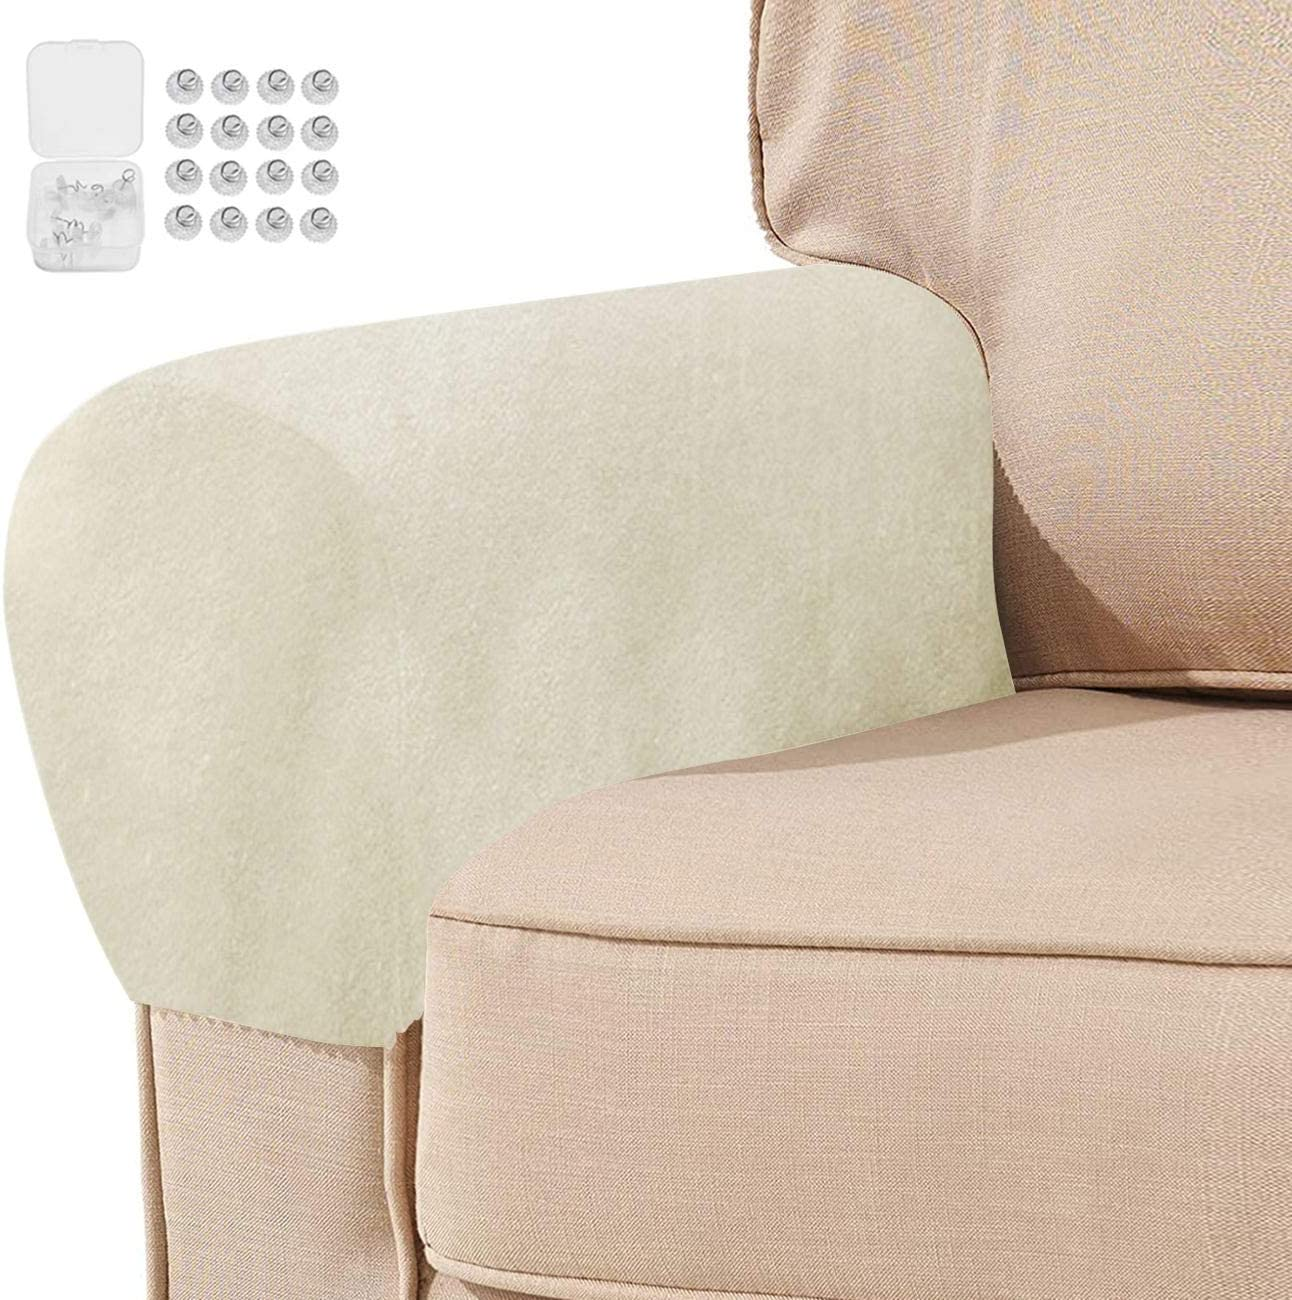 Set of 4 Thick Velvet Stretch Armrest Covers Anti-Slip Arm Covers for Chairs and Sofas Armchair Covers for Arms Couch Arm Covers Armrest Covers for Sofa Non Slip with Free Twist Pins(Ivory)